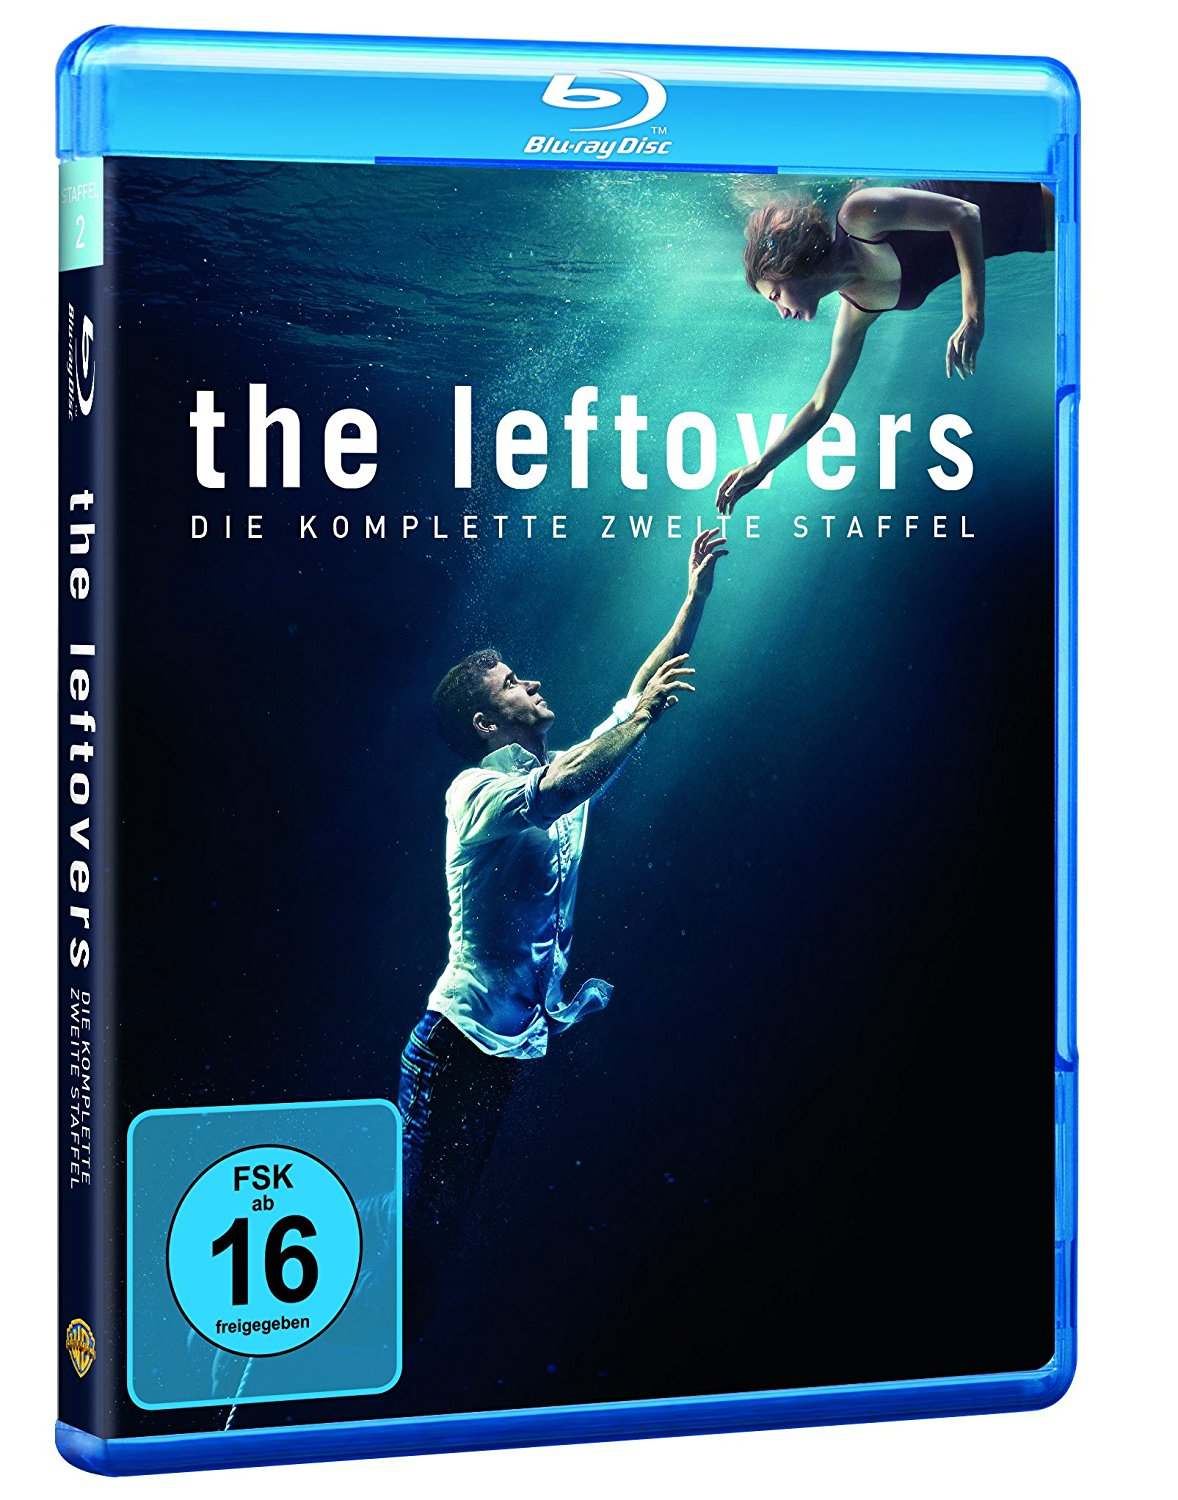 The Leftovers S01-S02 Complete German Dl 1080p BluRay x264-iNtentiOn